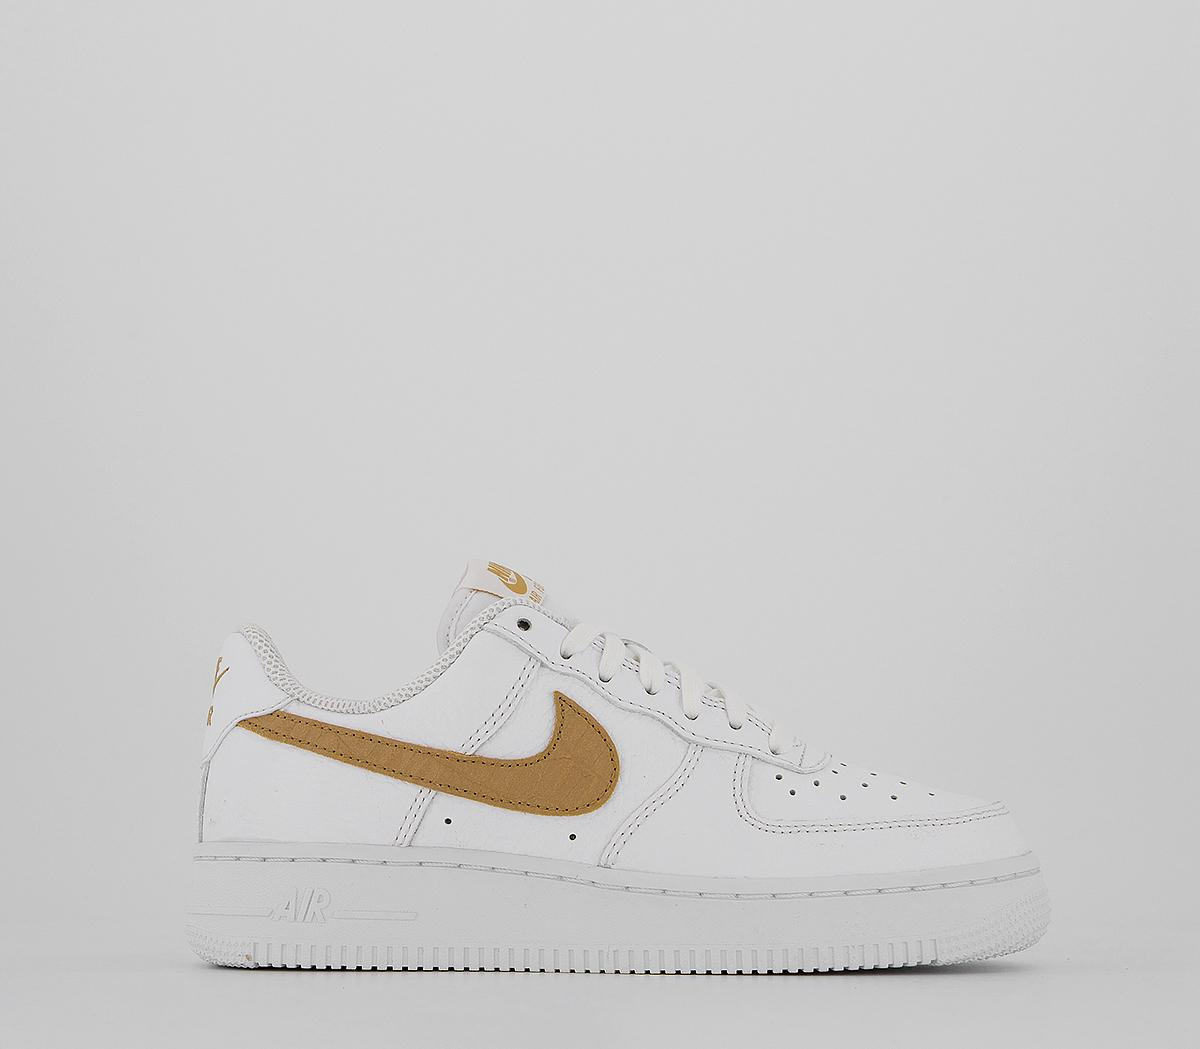 Favor inercia Editor  Nike Air Force 1 Lv8 Trainers White Club Gold White - Unisex Sports